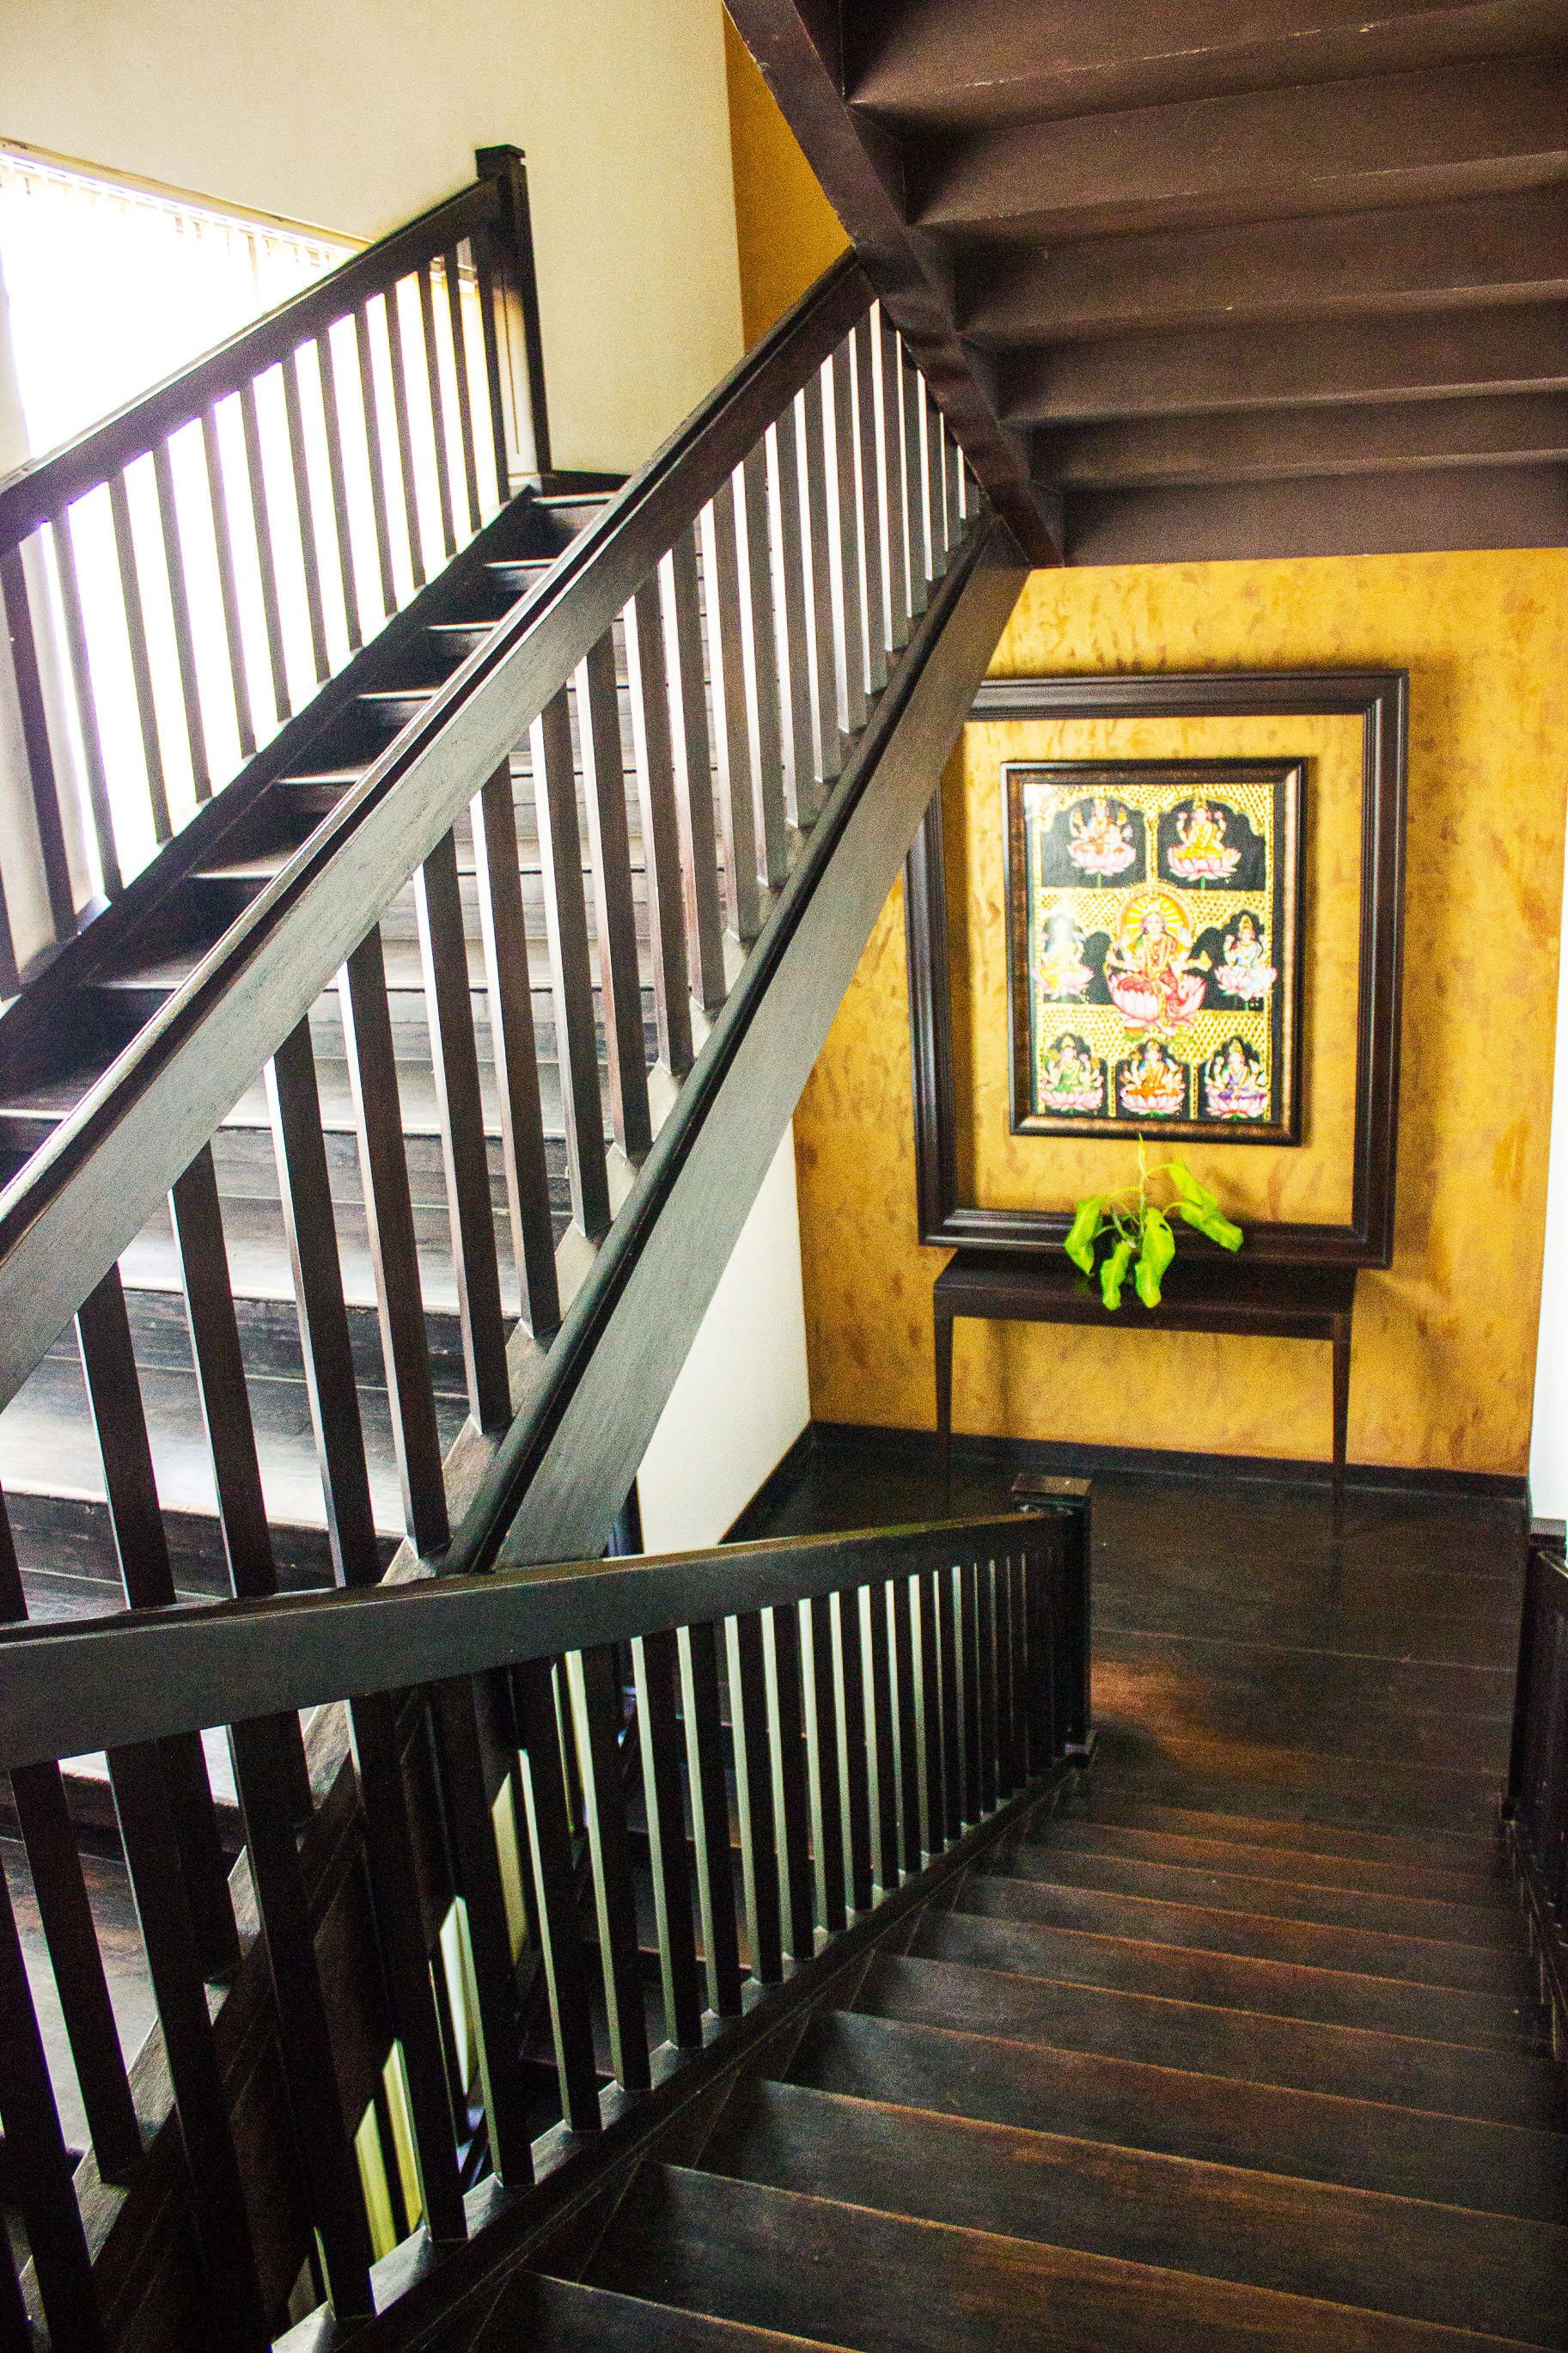 Teakwood stairways and corridors are dotted with traditional paintings